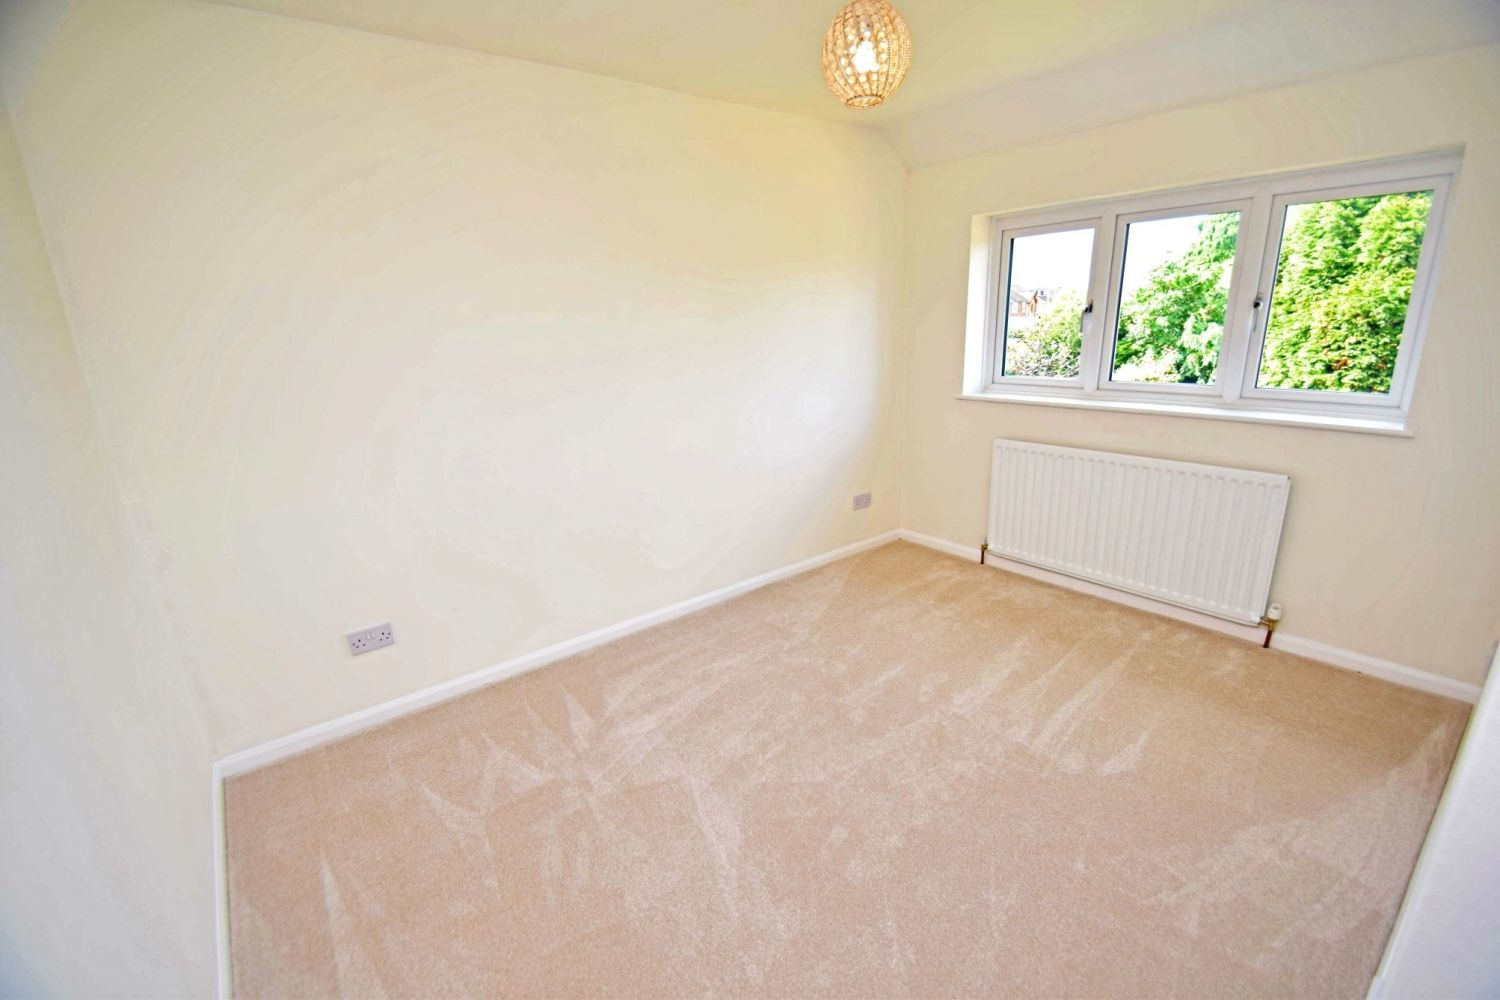 3 bed semi-detached for sale in Beachcroft Road, Wall Heath  - Property Image 8